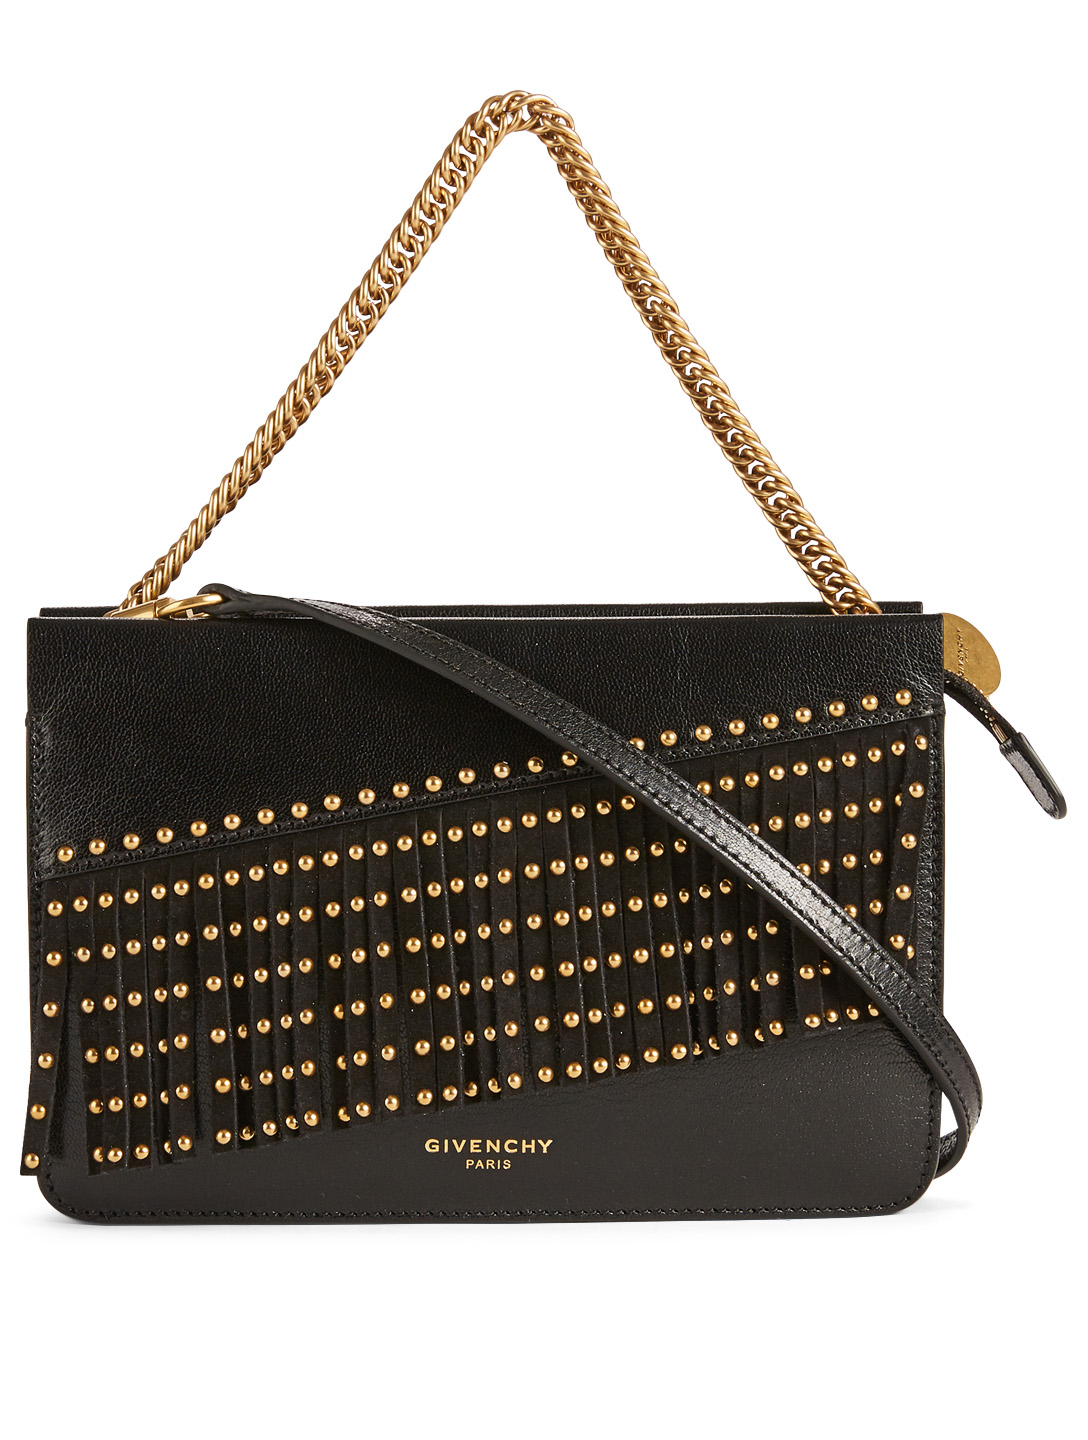 695181a5f229 GIVENCHY Cross 3 Leather Crossbody Bag With Studded Fringe